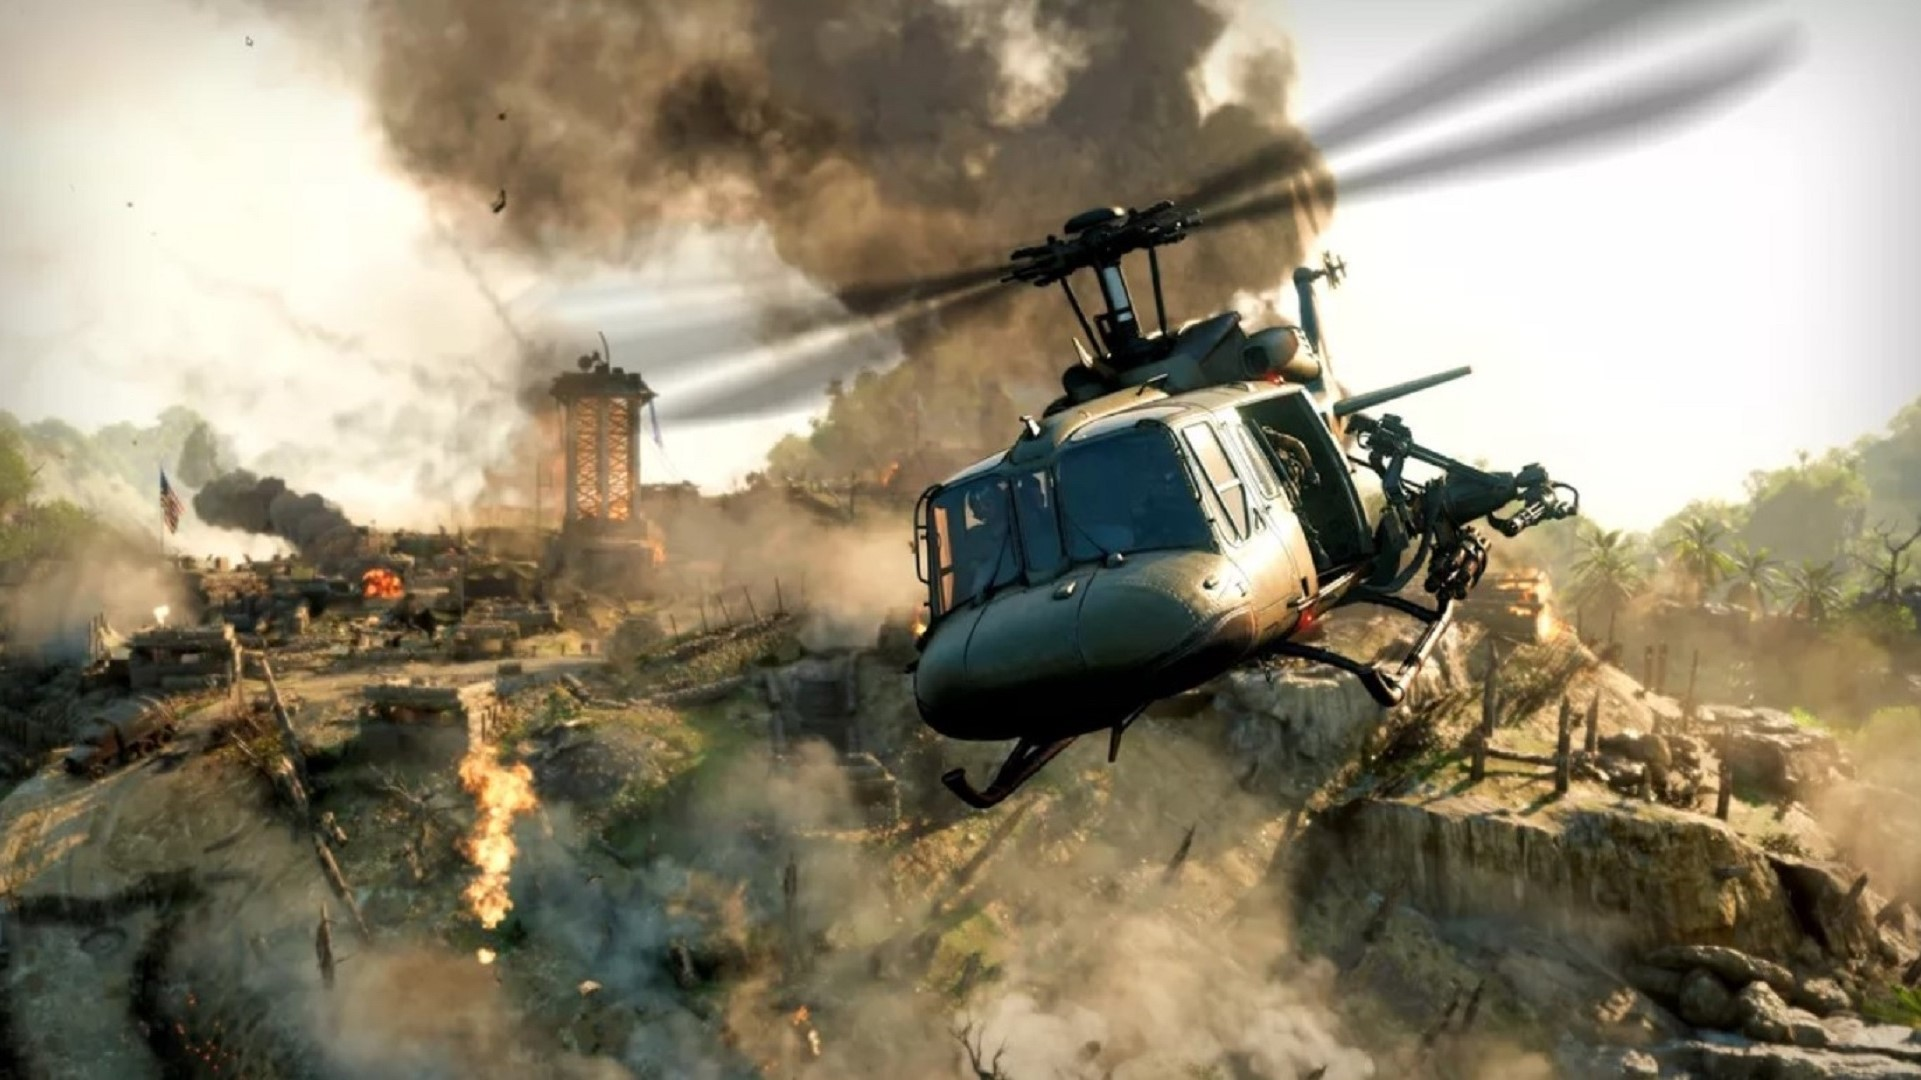 Call Of Duty Black Ops Cold War Launch Trailer Drops Ahead Of Release Godisageek Com